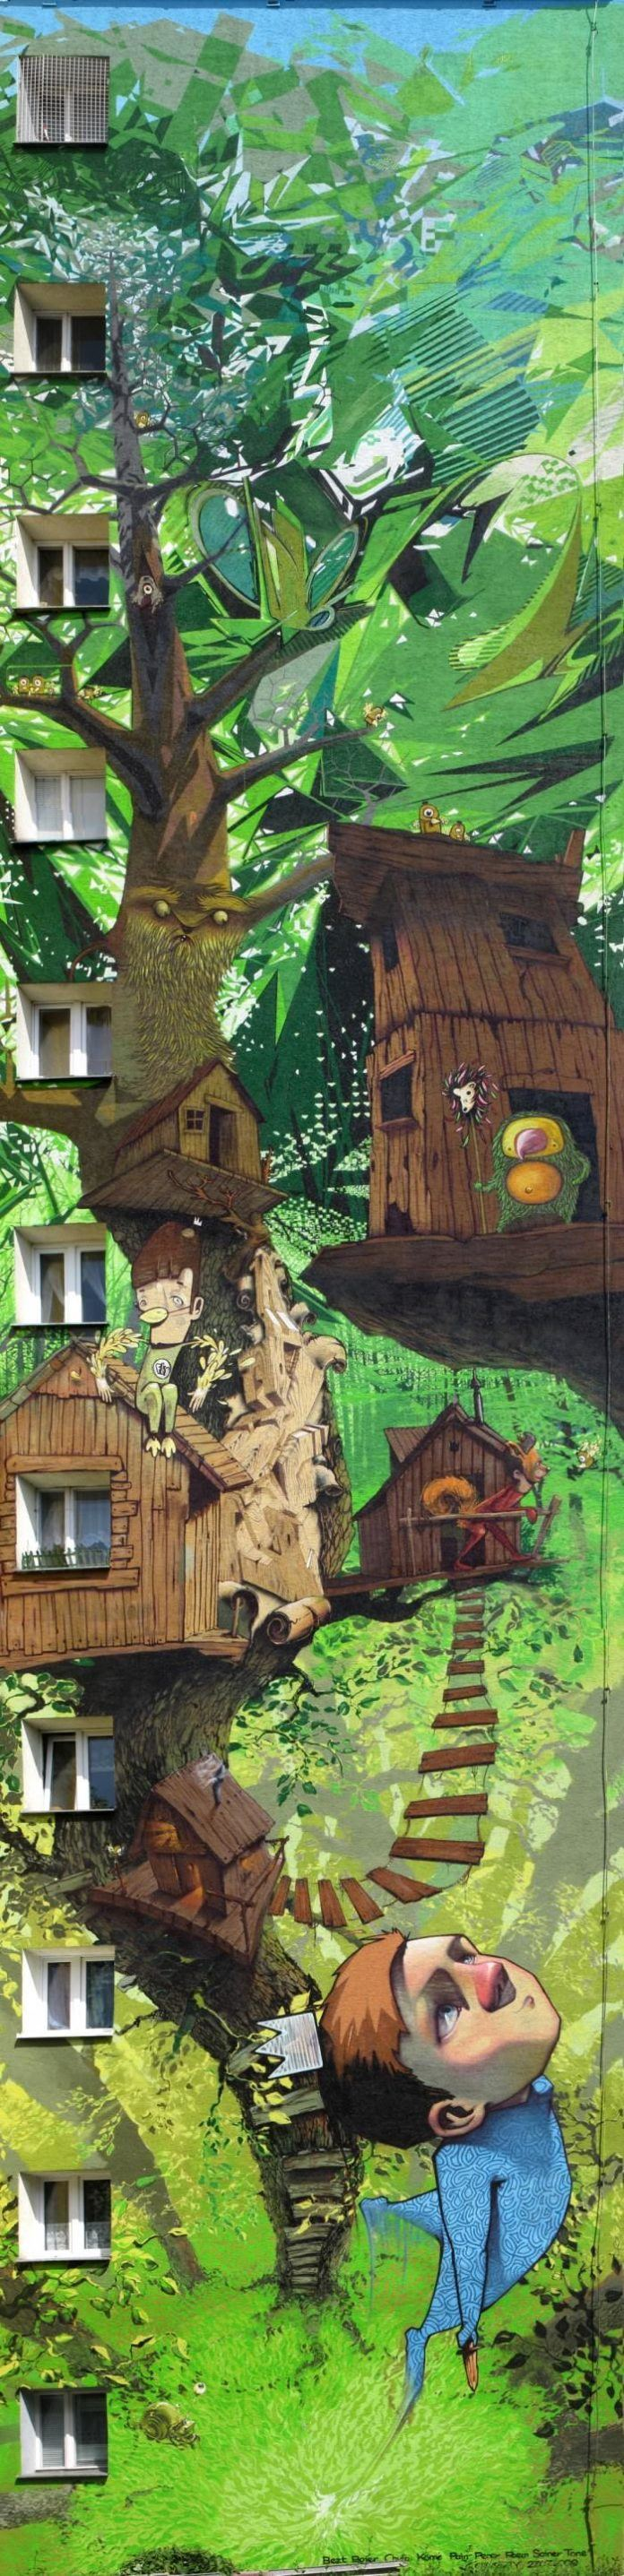 awesome graffiti cool street art fantasy tree house imagination garden dream boy clever